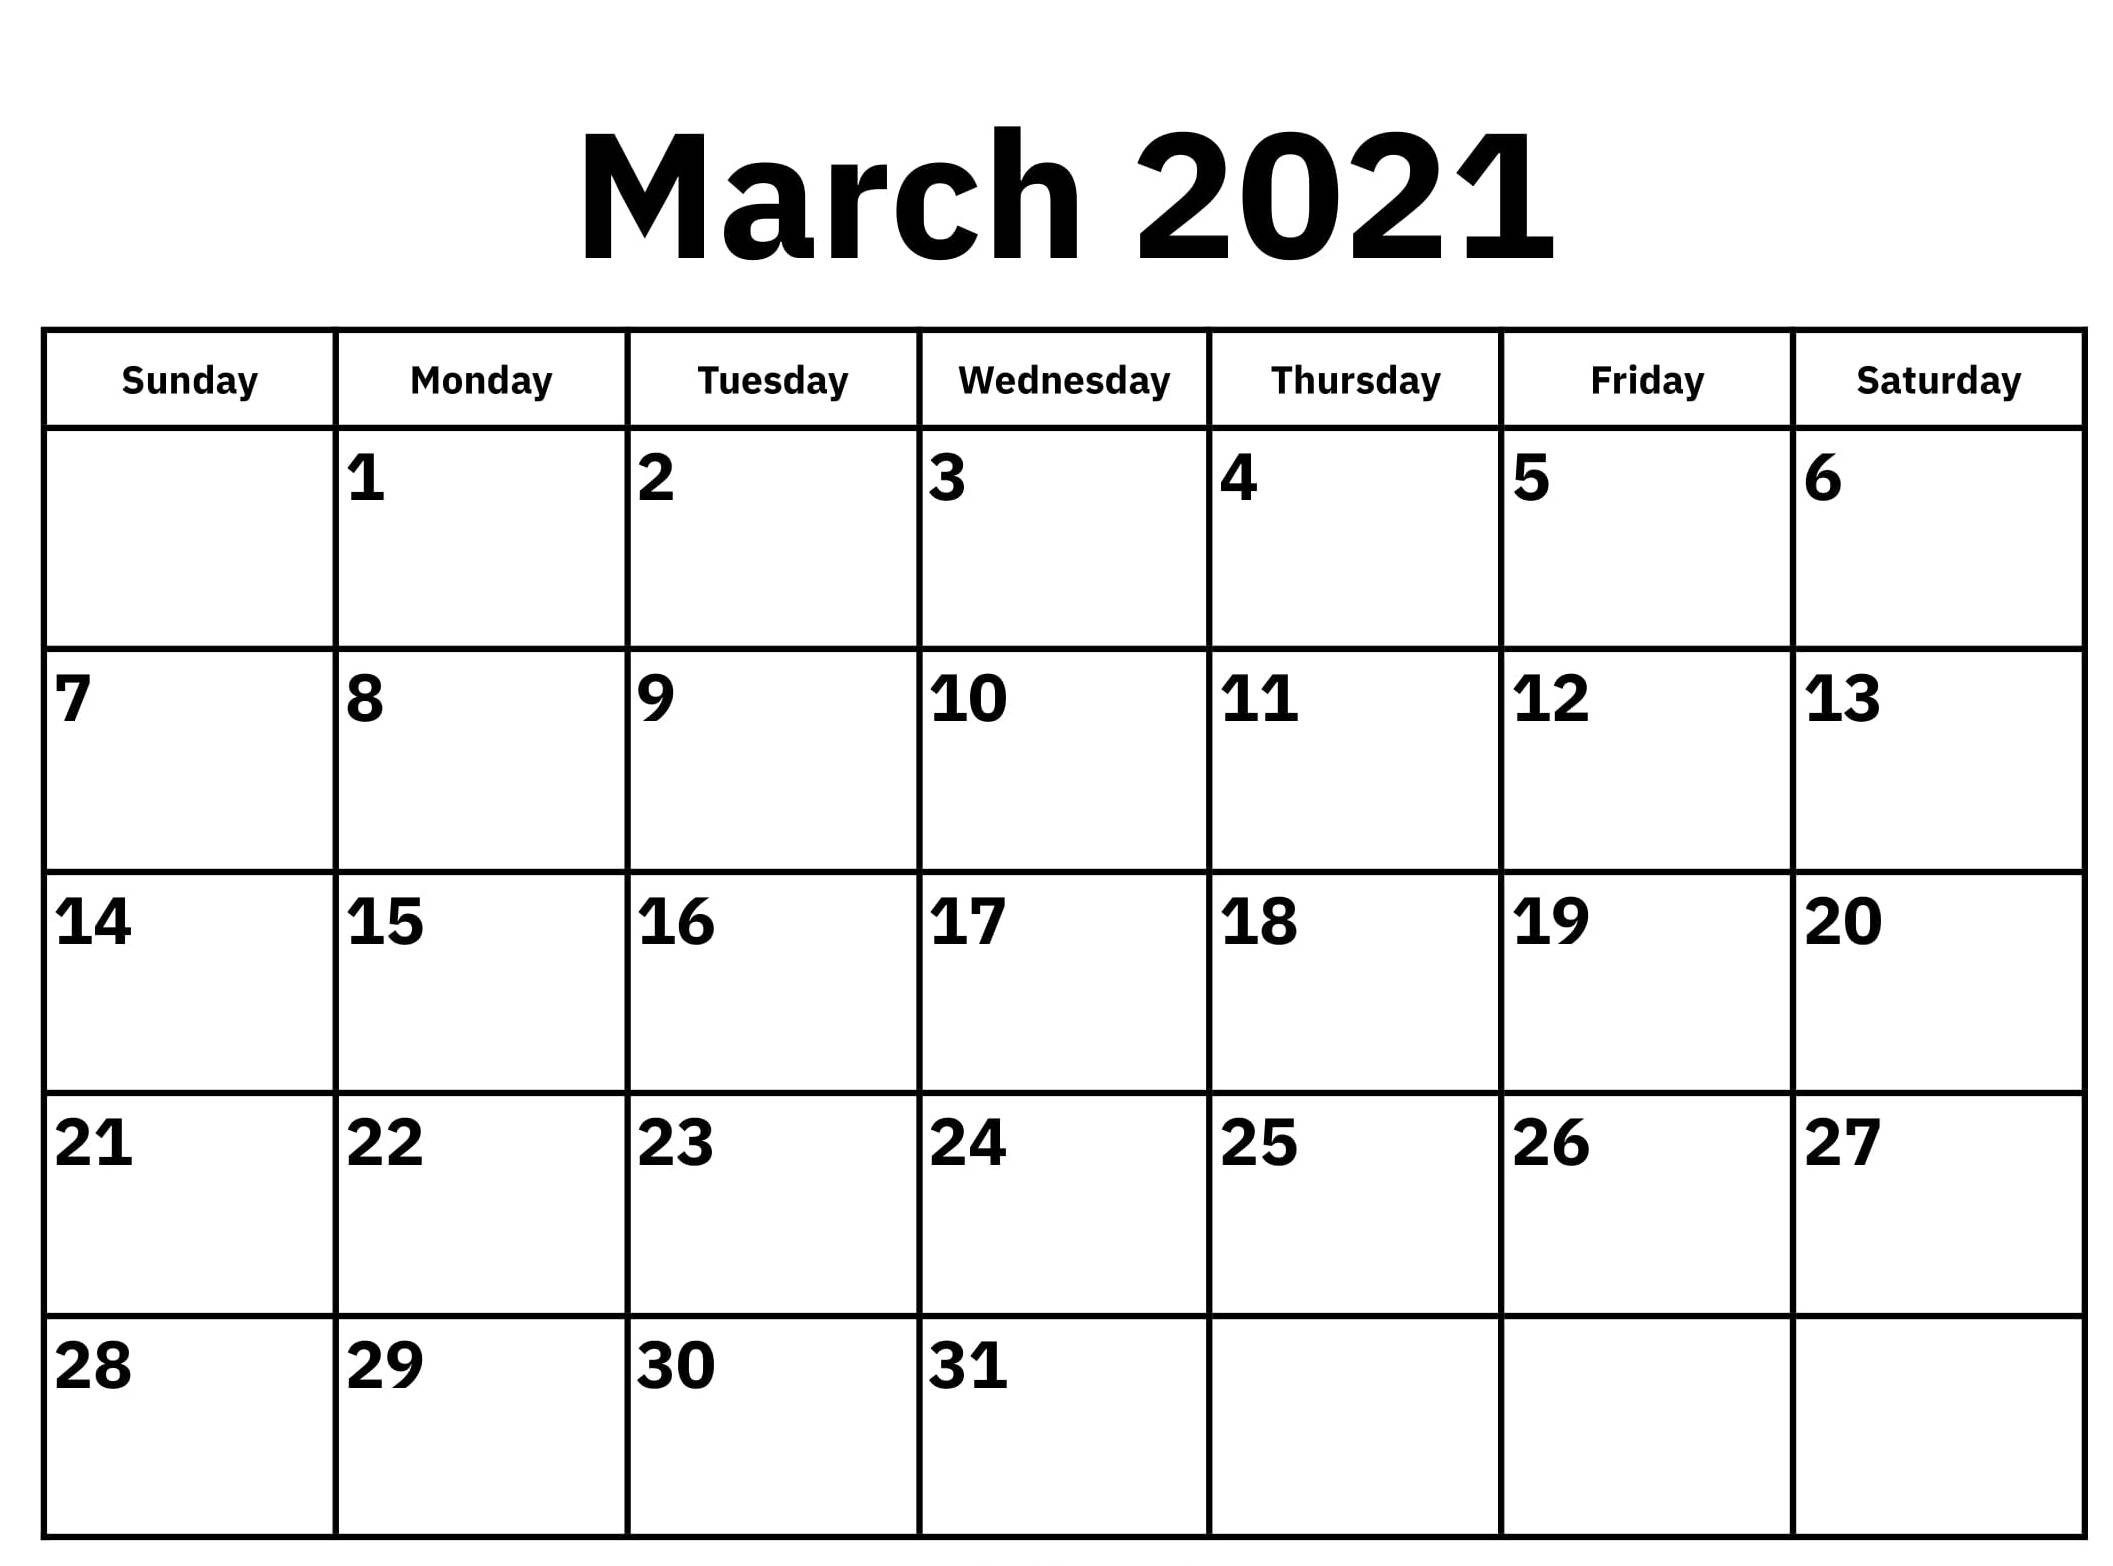 Blank March 2021 Calendar Printable Paper Sheets - One  Printable March 2021 Calendar Pdf